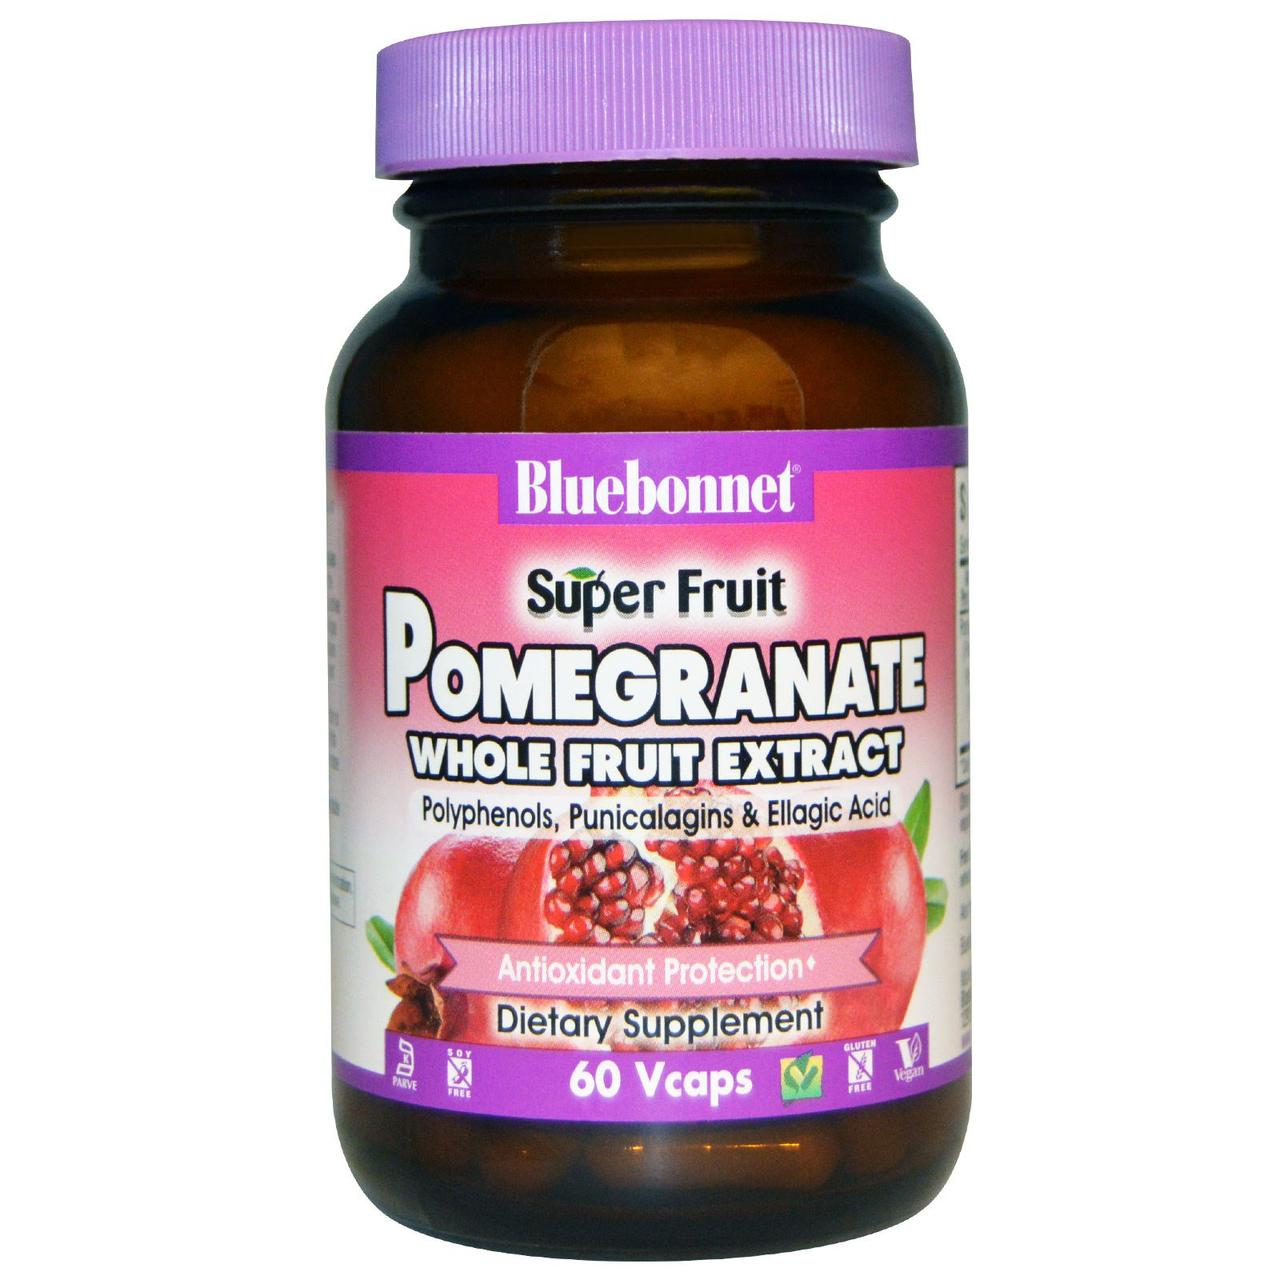 Экстракт плодов граната, Pomegranate Whole Fruit Extract, Bluebonnet Nutrition, 60 кап.